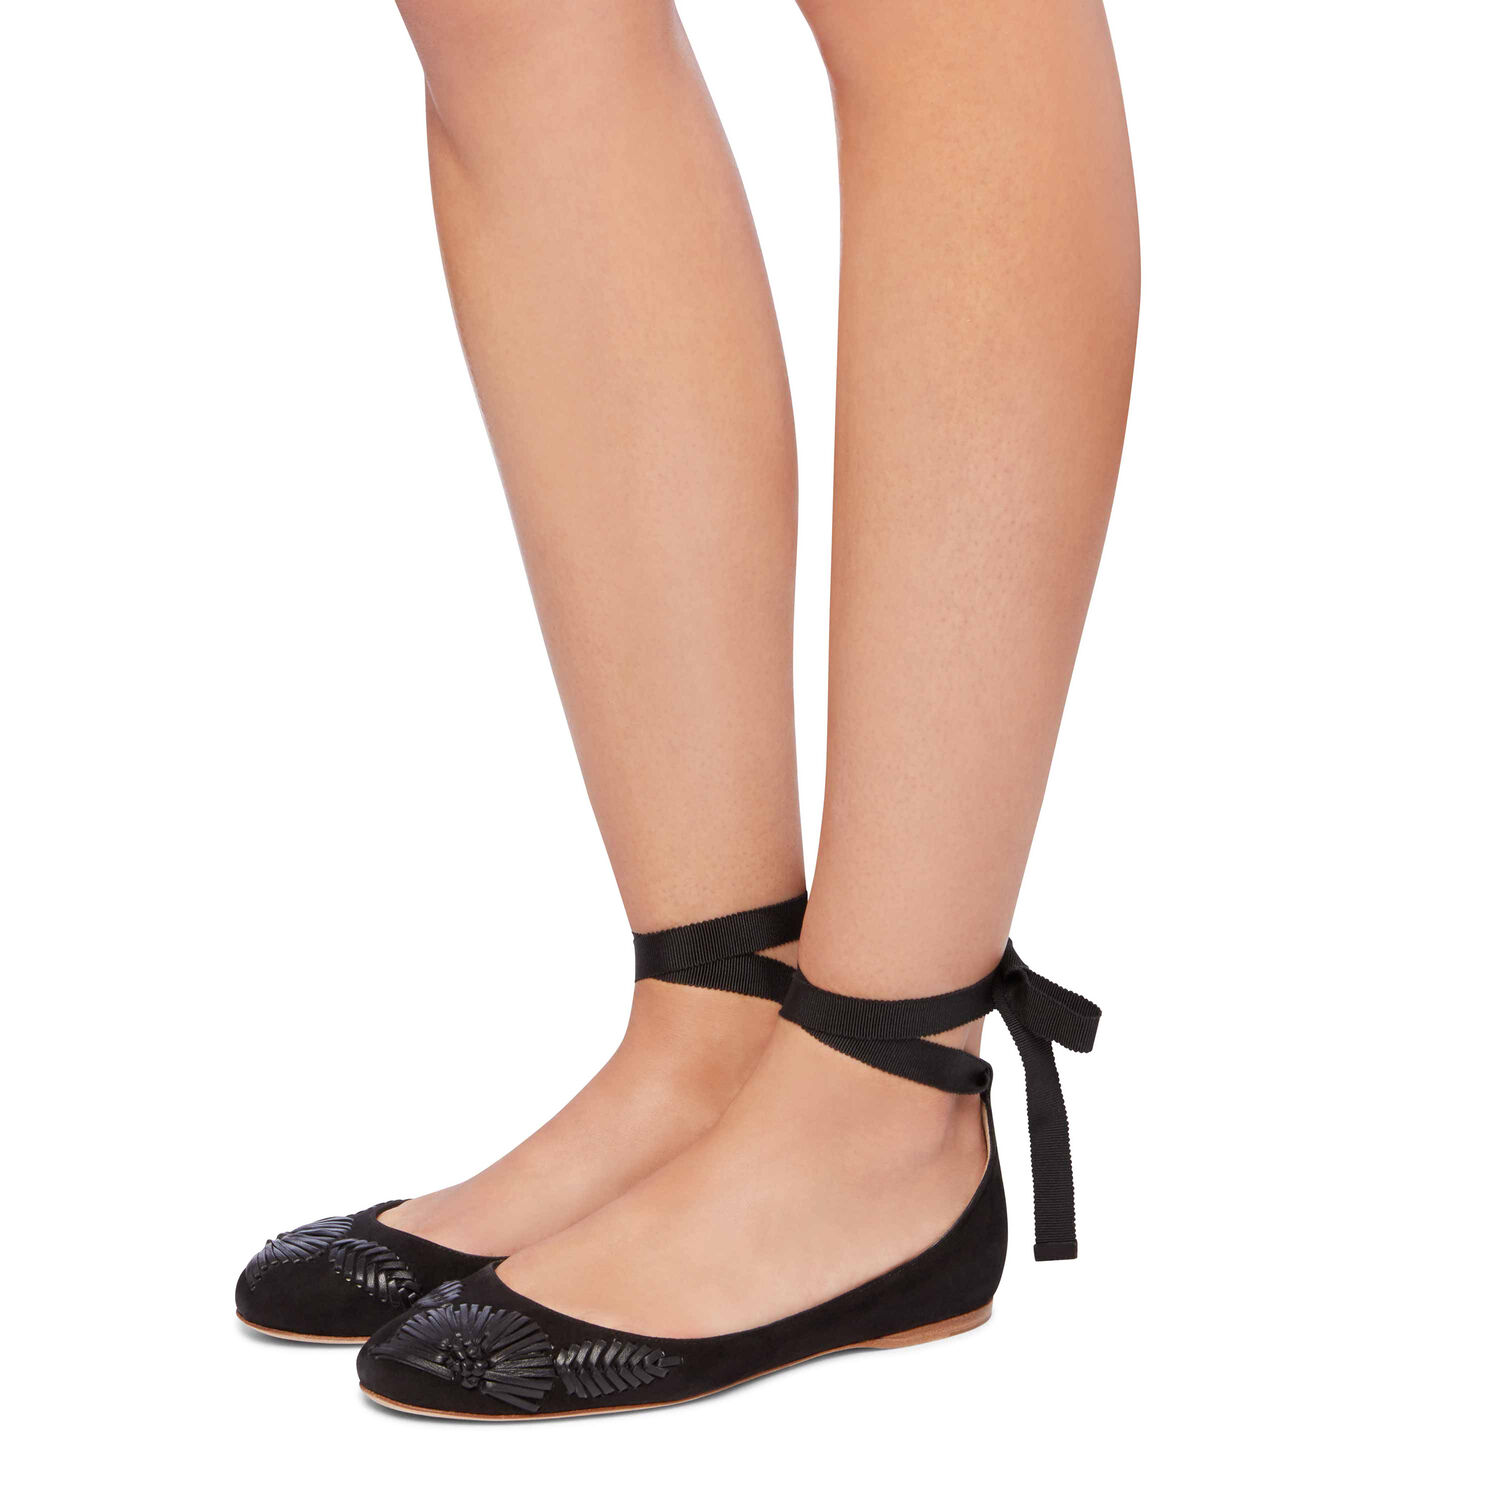 EMBROIDERED SUEDE BALLET FLAT